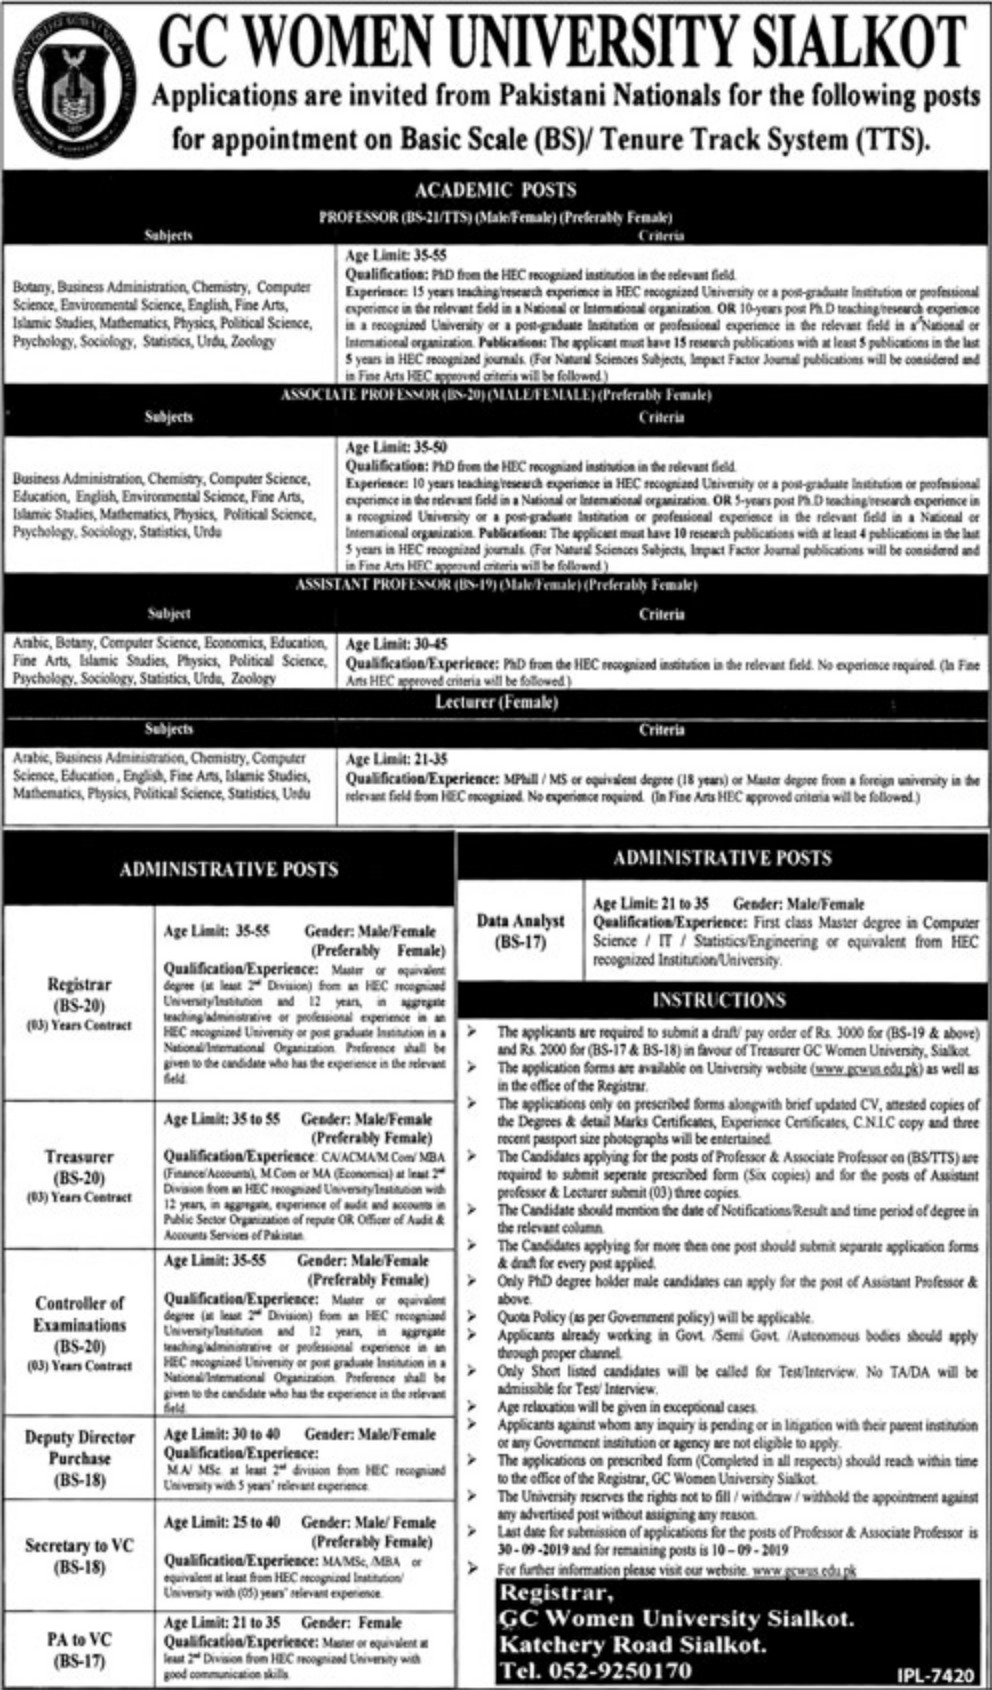 GC Women University Sialkot Jobs 2019 Download Application Form